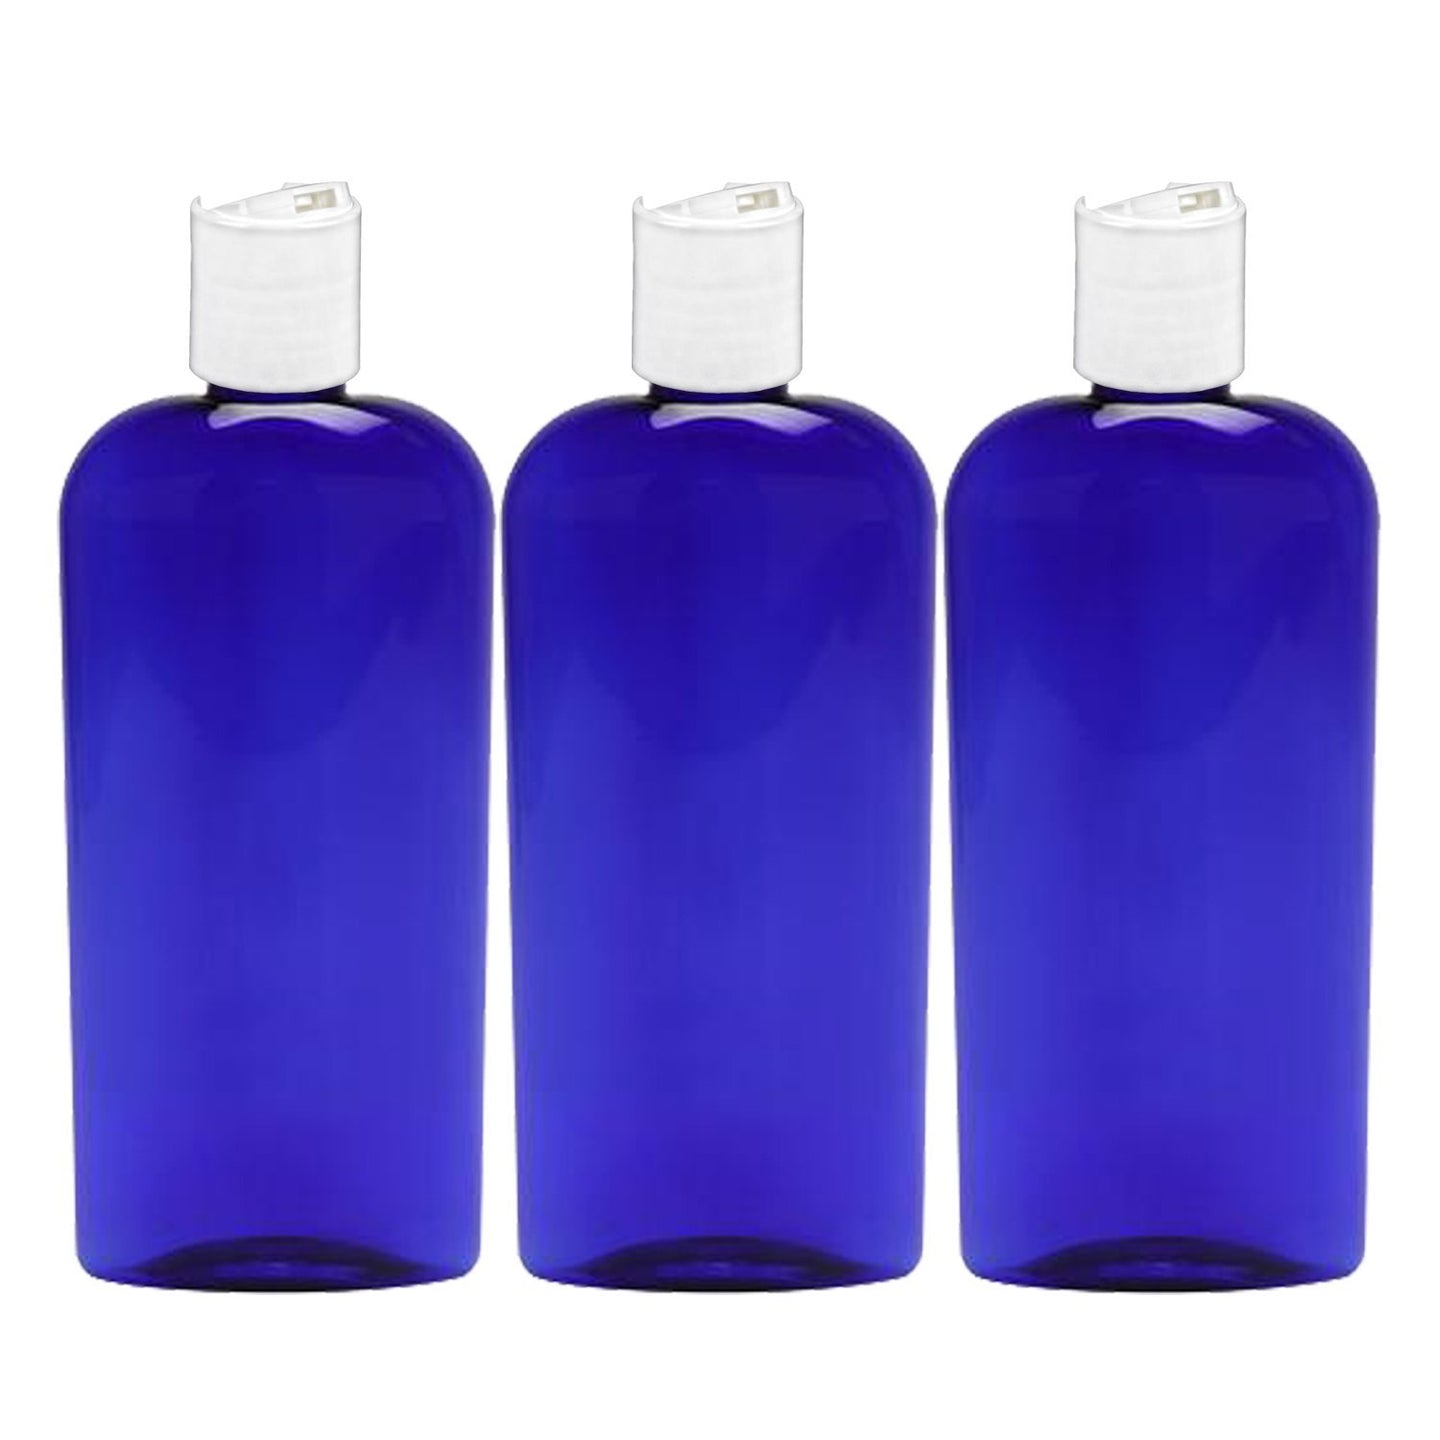 MoYo Natural Labs 8 oz Disc Cap Bottles, Empty Containers for Shampoo or Lotions, BPA Free PET Plastic Squeezable Toiletry/Cosmetic Bottles (Pack of 3, Blue color)